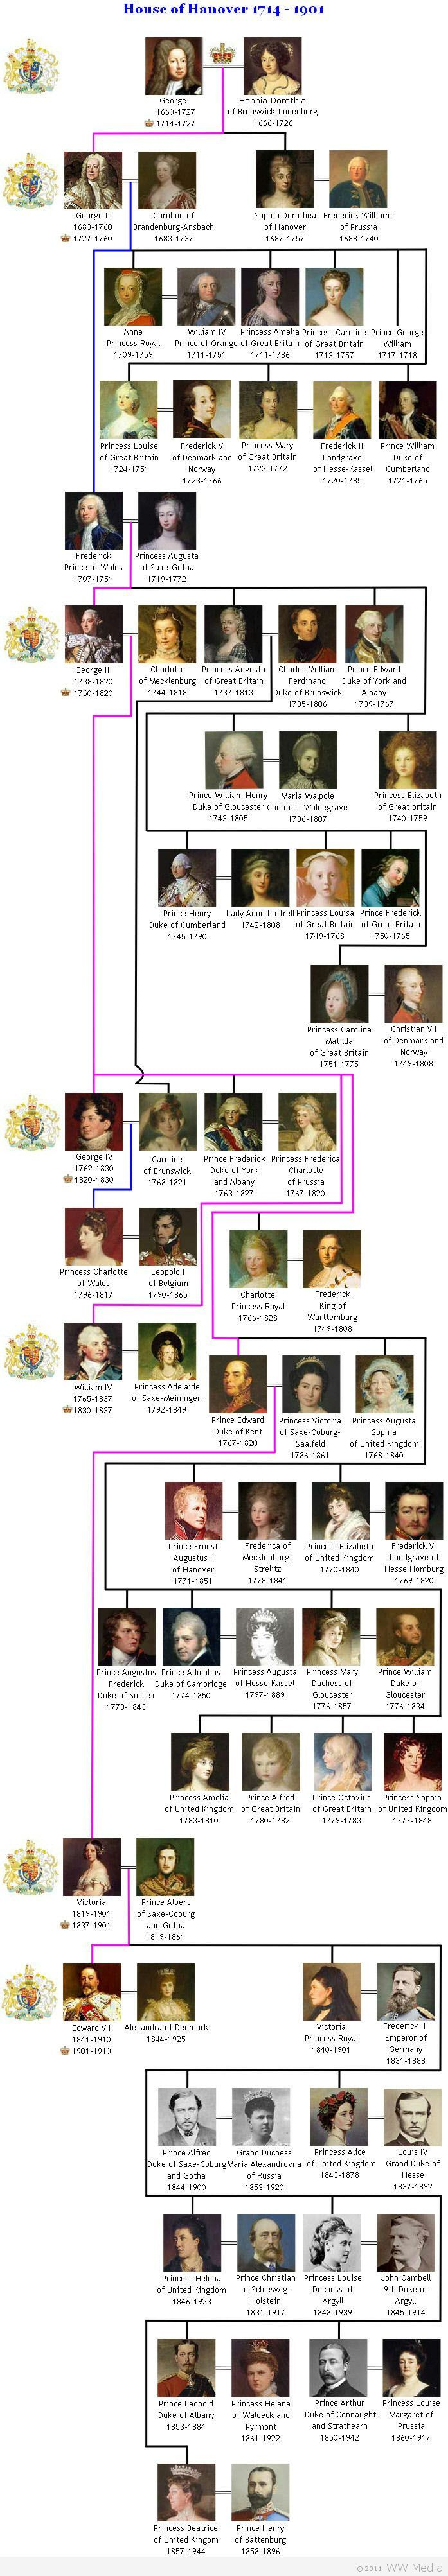 House of Hanover family tree 1714-1901. http://www.pinterest.com/aurora771/european-history/